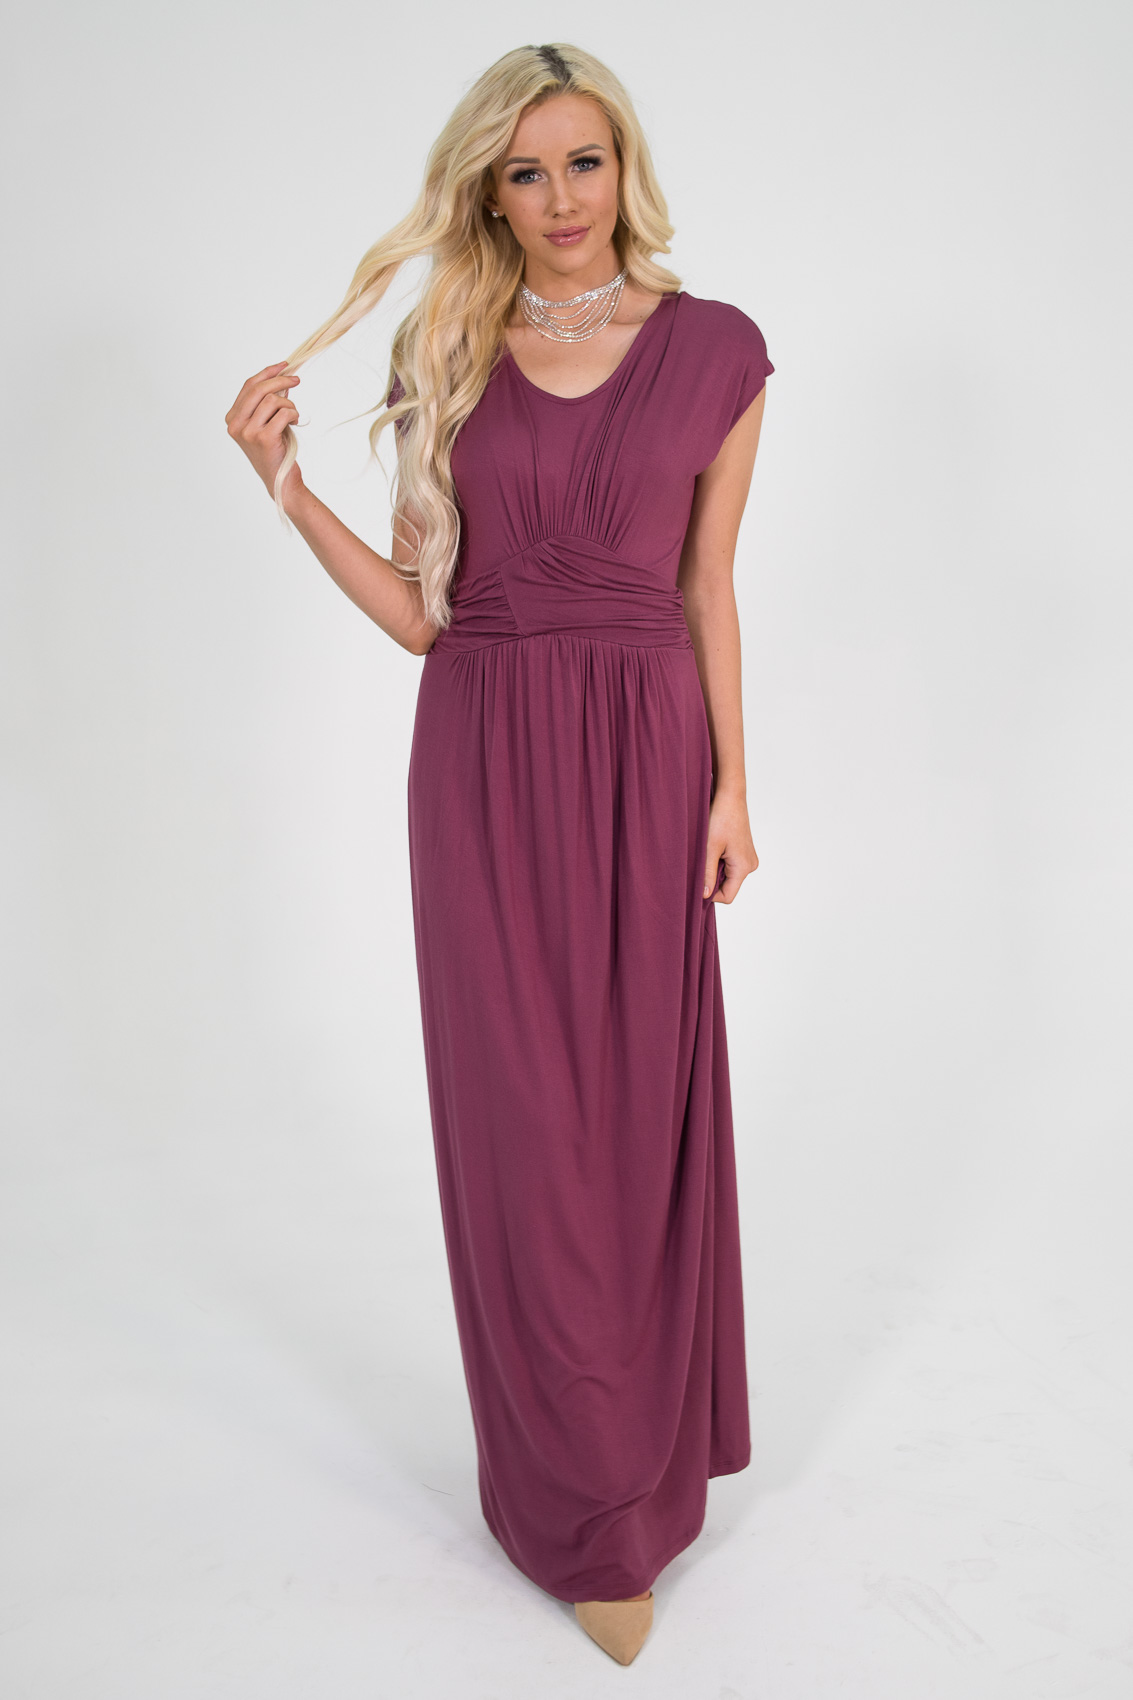 Modest bridesmaid dresses modest brides maid dresses modest athena modest maxi dress or bridesmaid dress in dark rose maroon ombrellifo Image collections